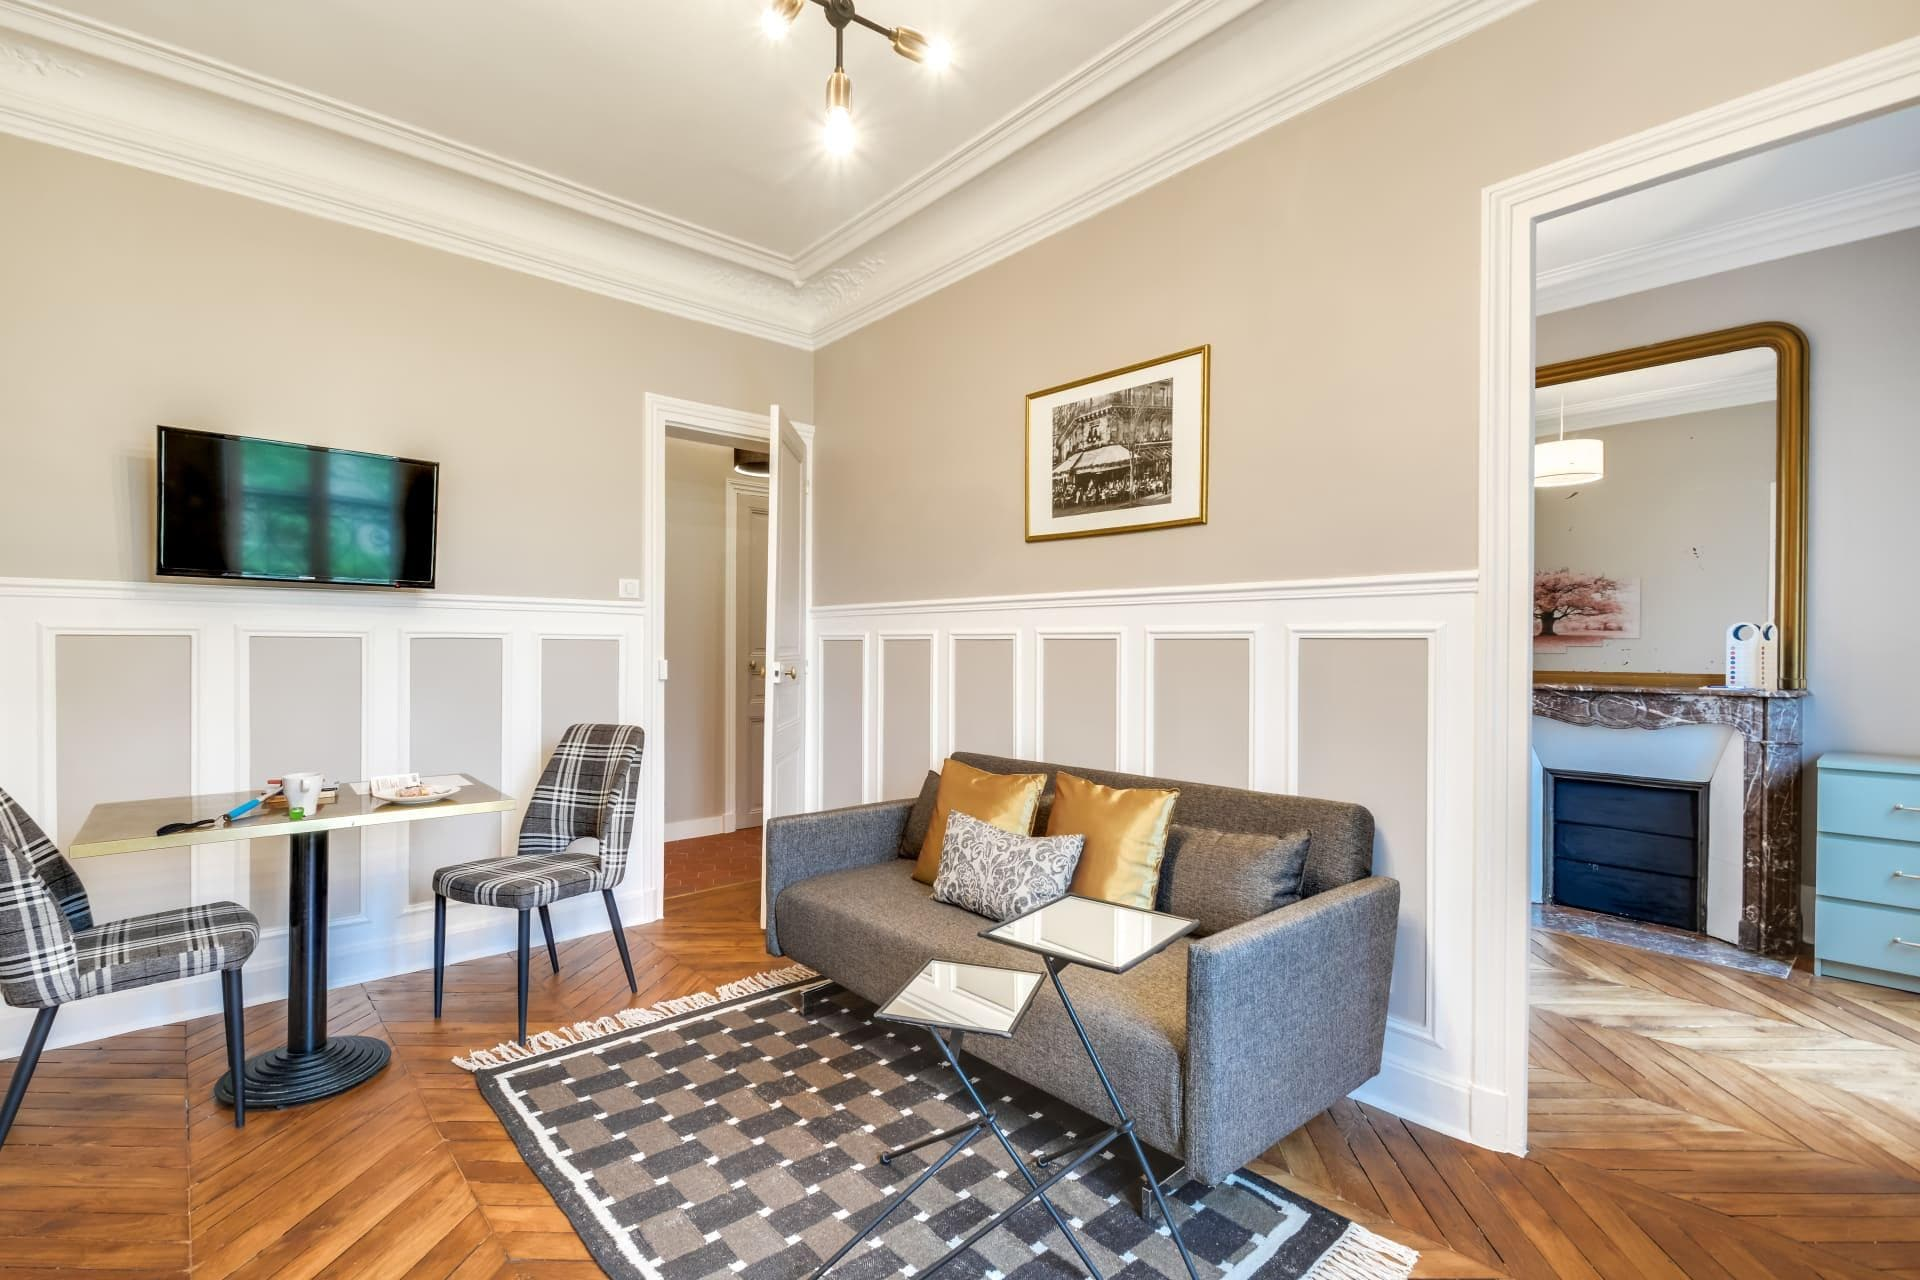 Elegant White Paneled One Bedroom Apartment with a Marble Fireplace